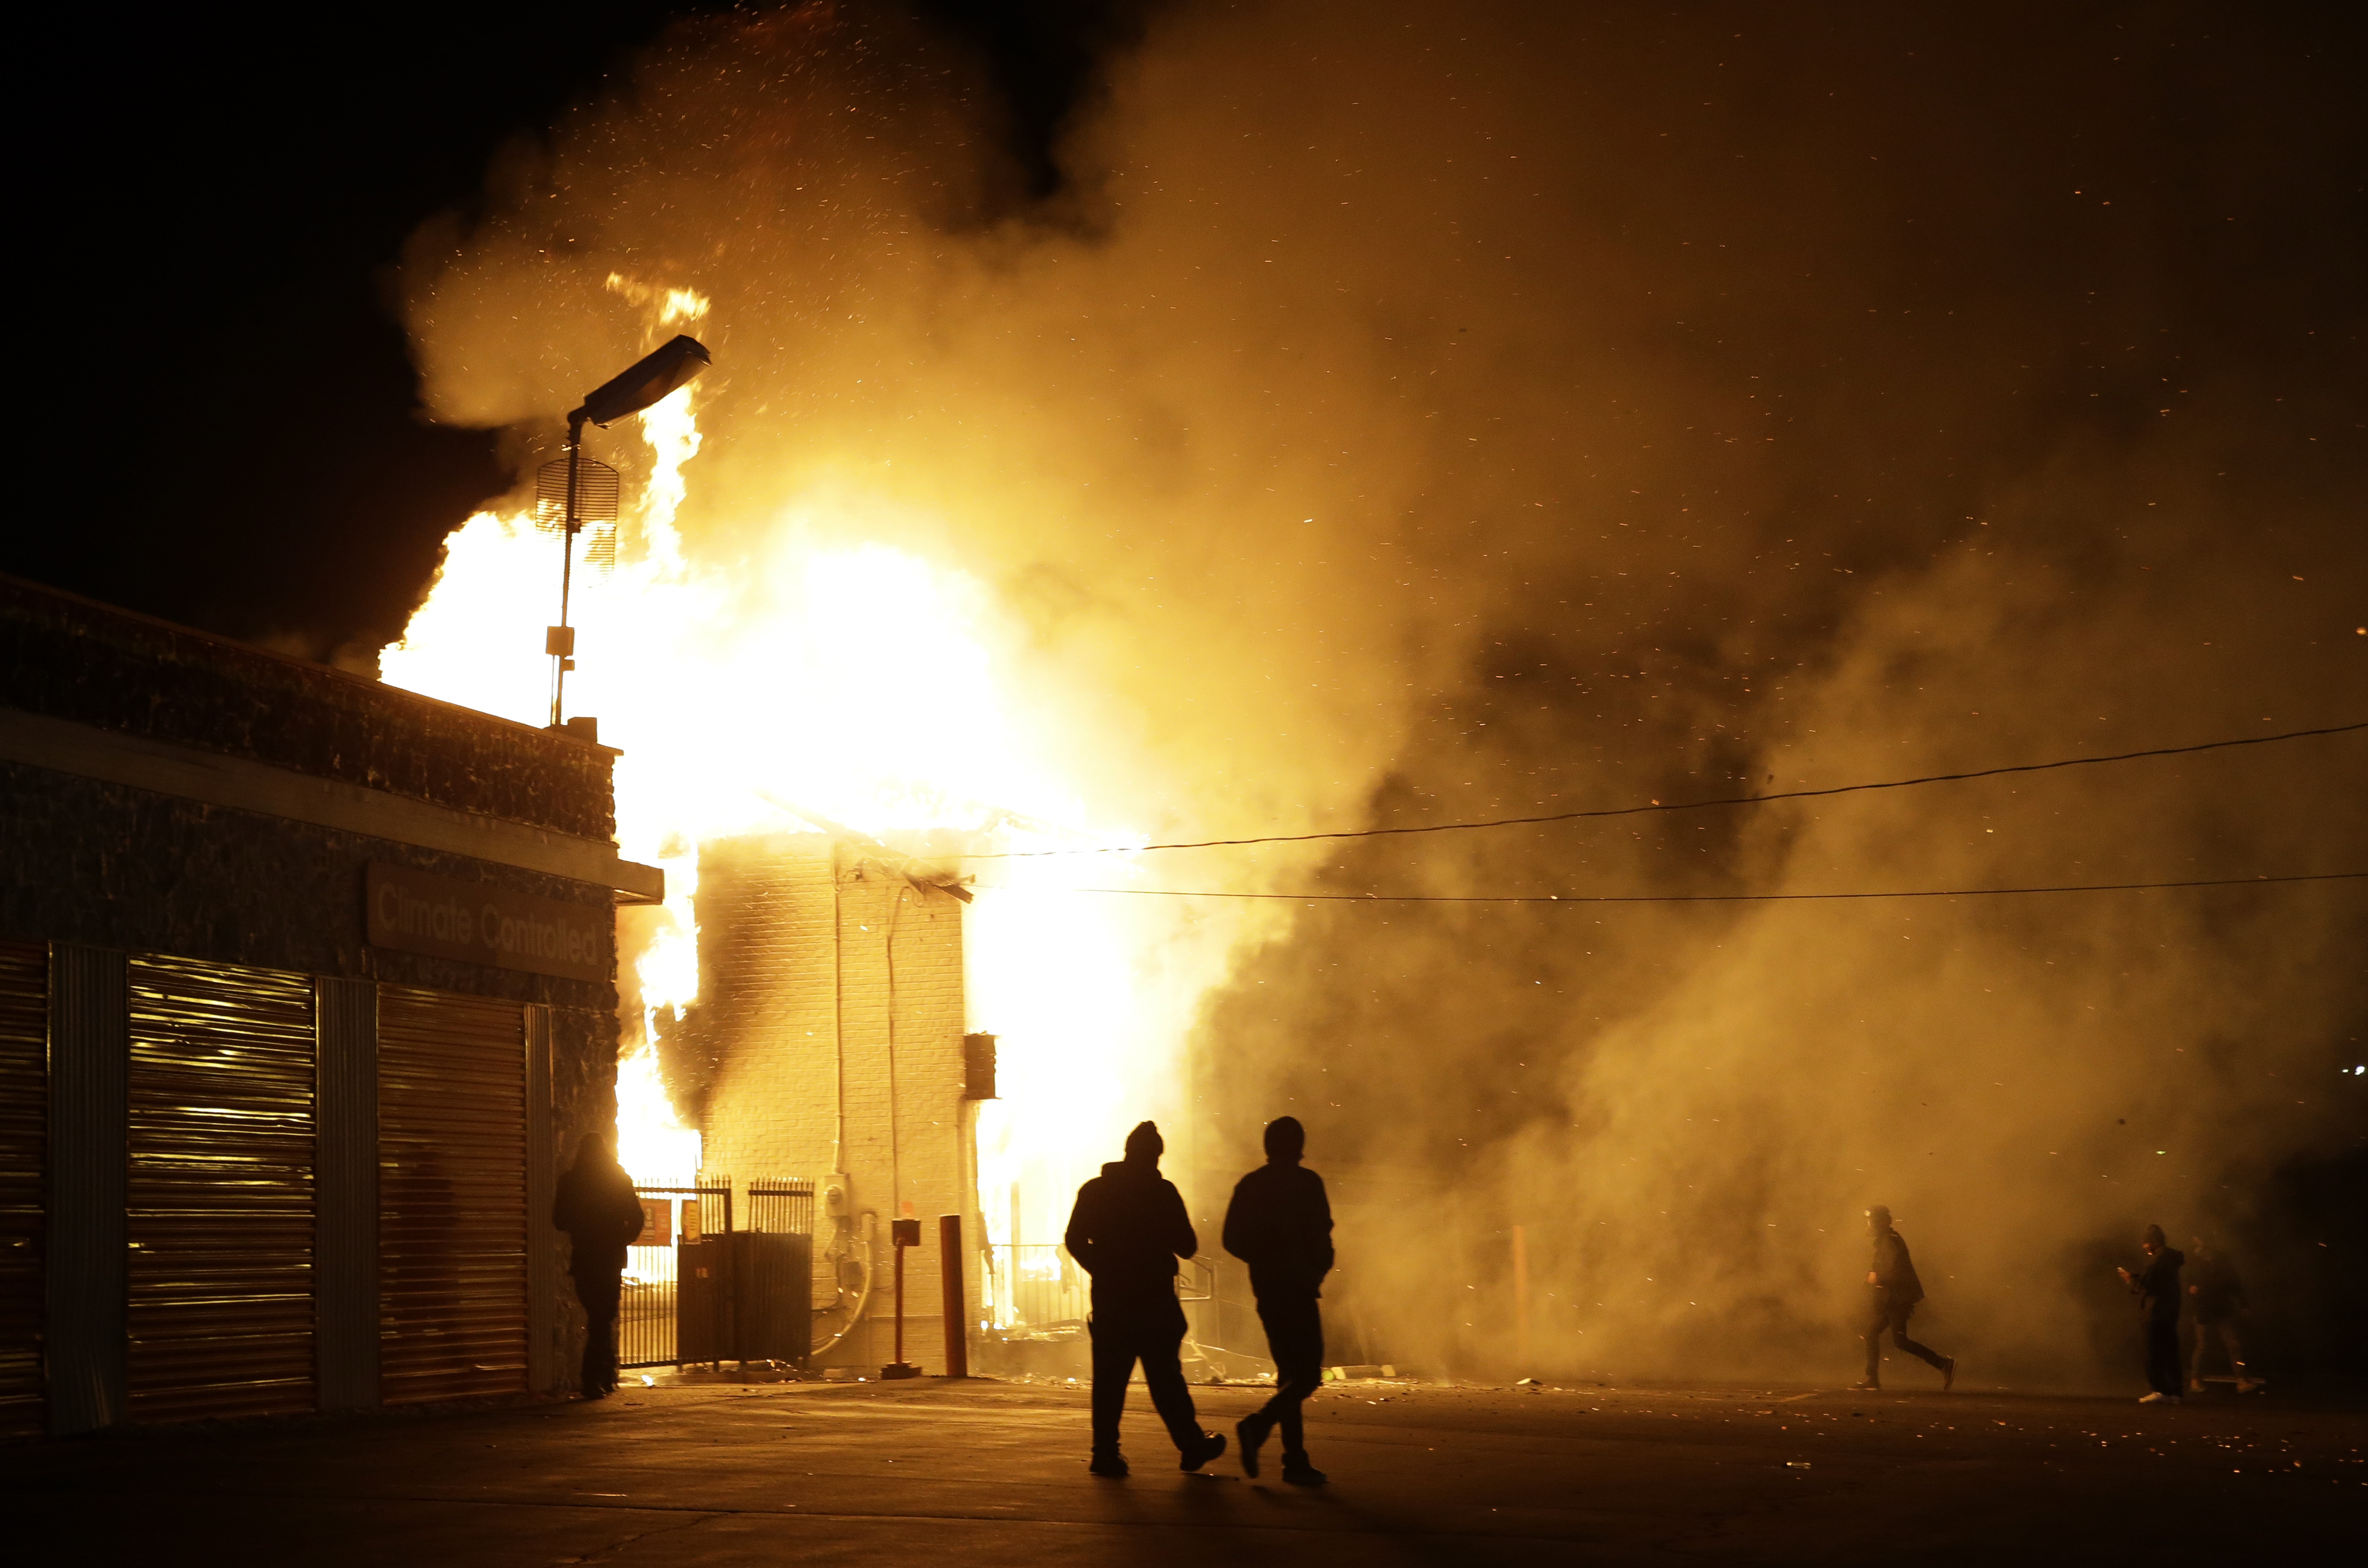 West Florissant Avenue in Ferguson, MO: Protestors Burn Buildings, Including The Original Red's BBQ